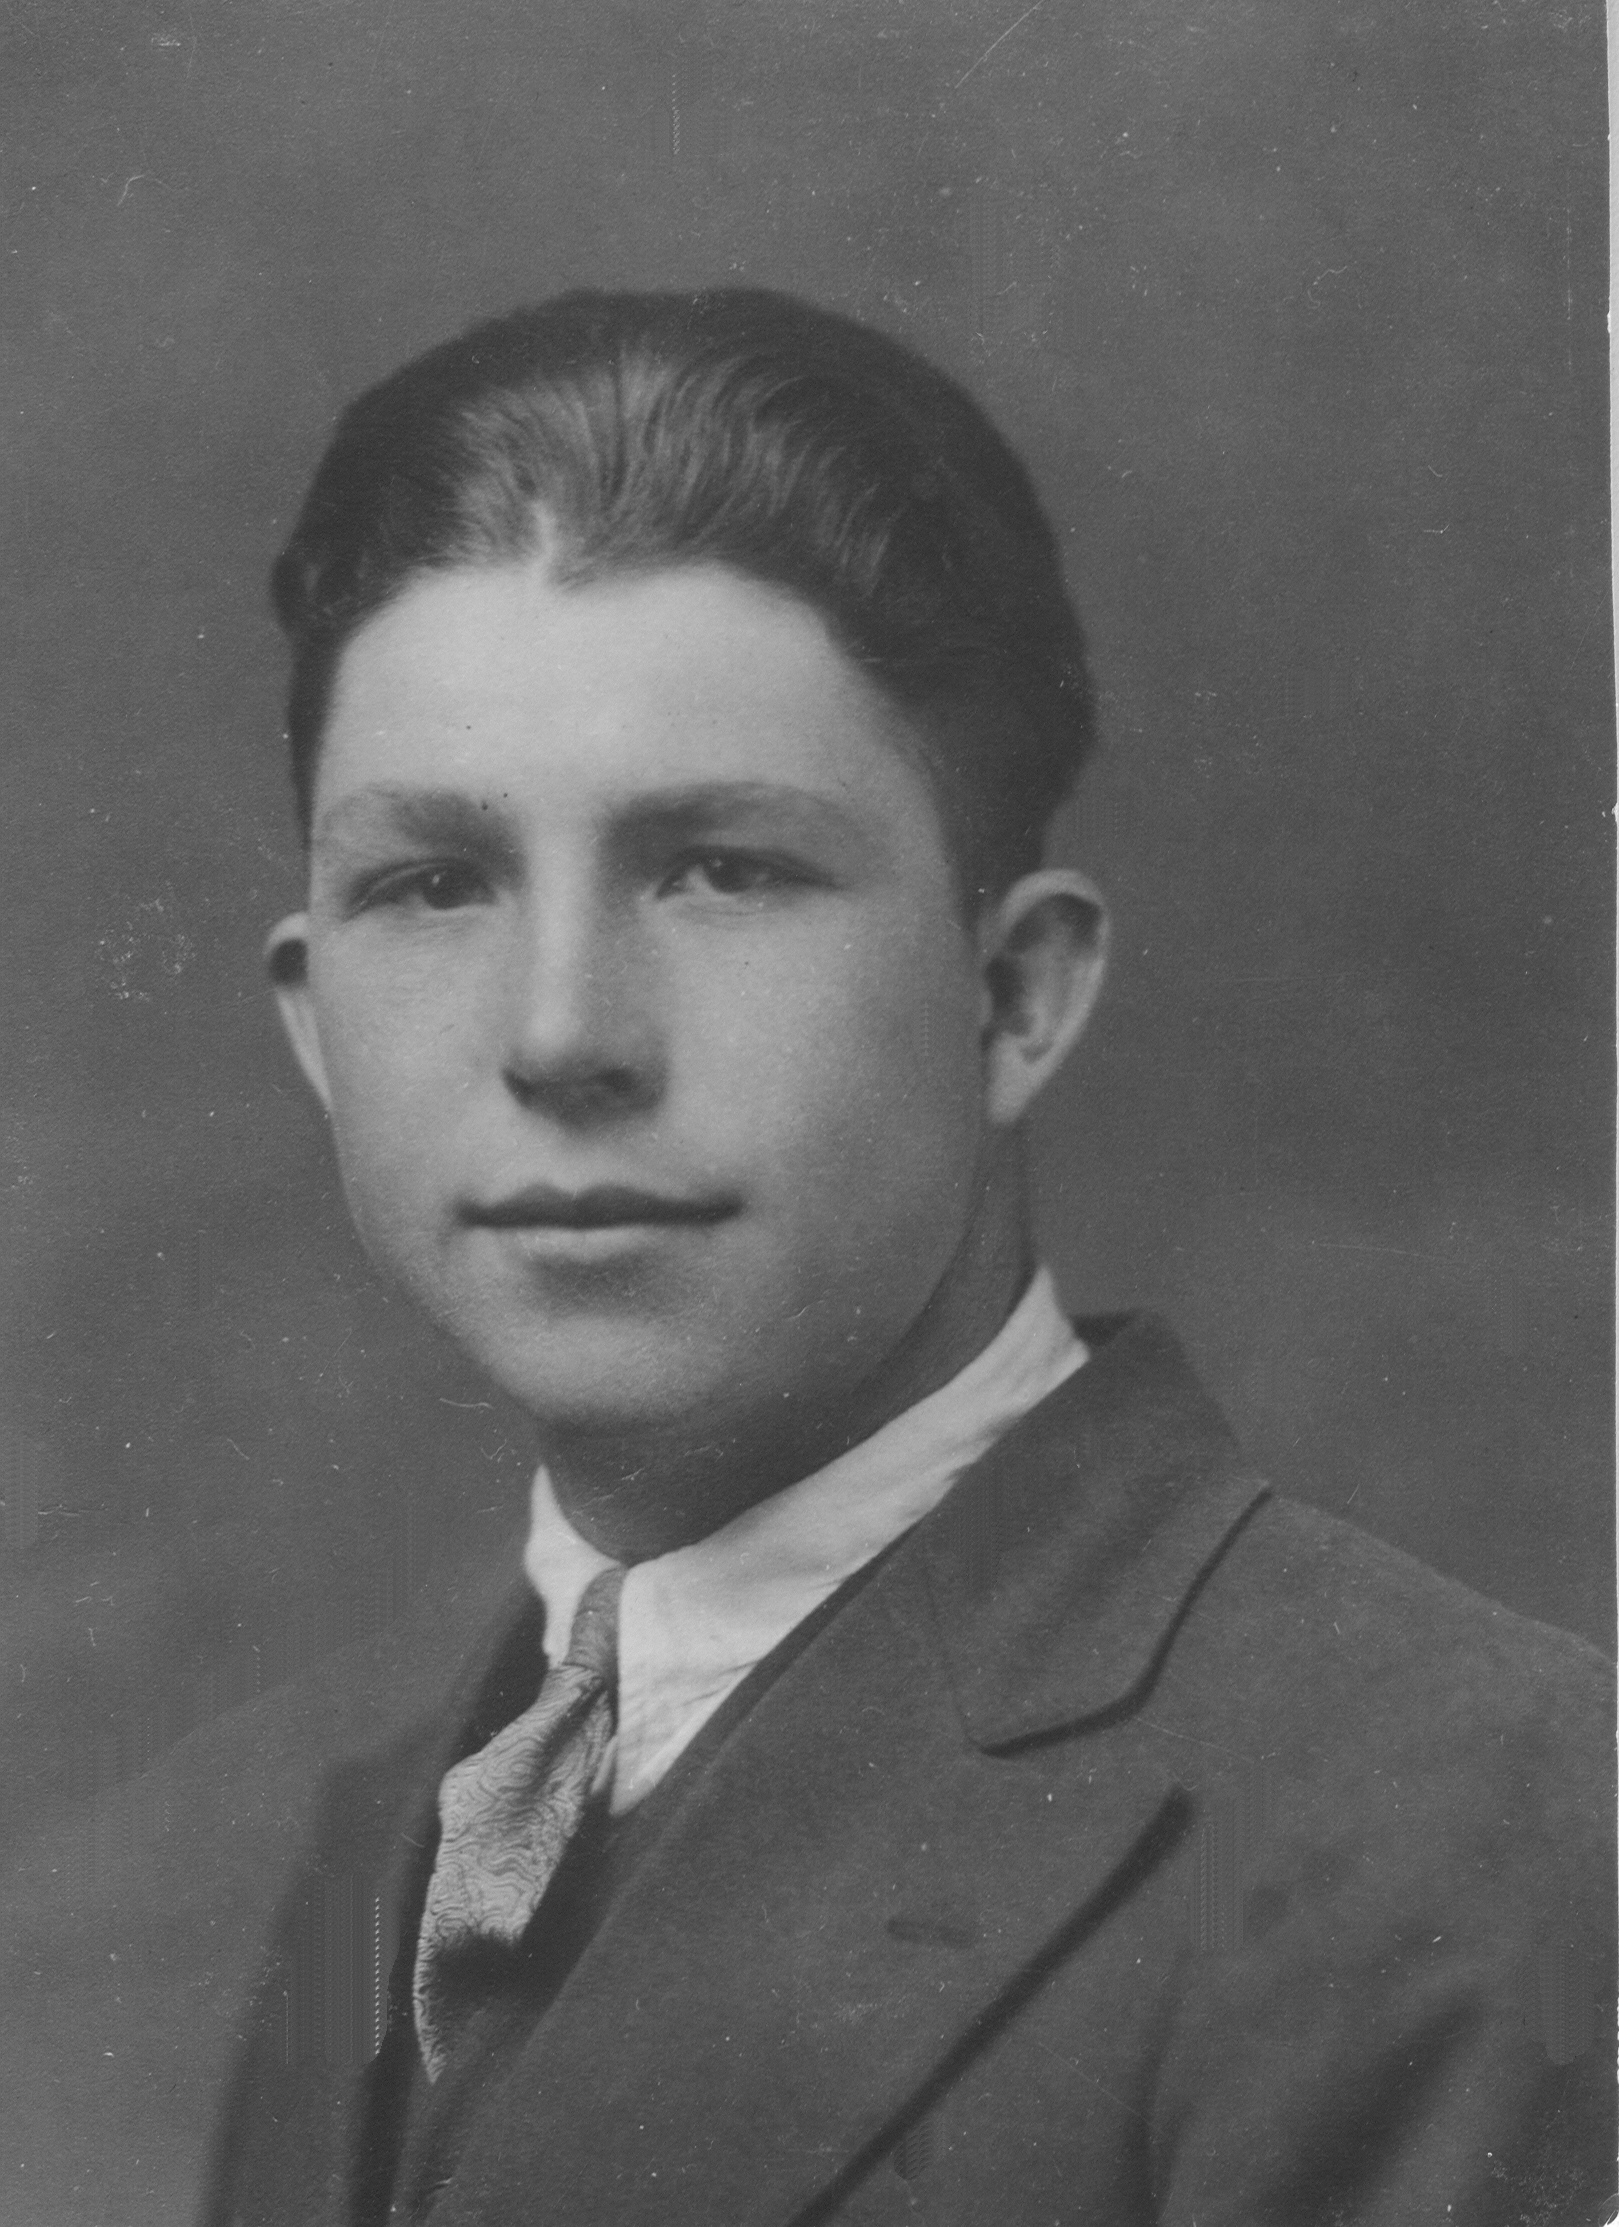 Gowers, Ronald Merle